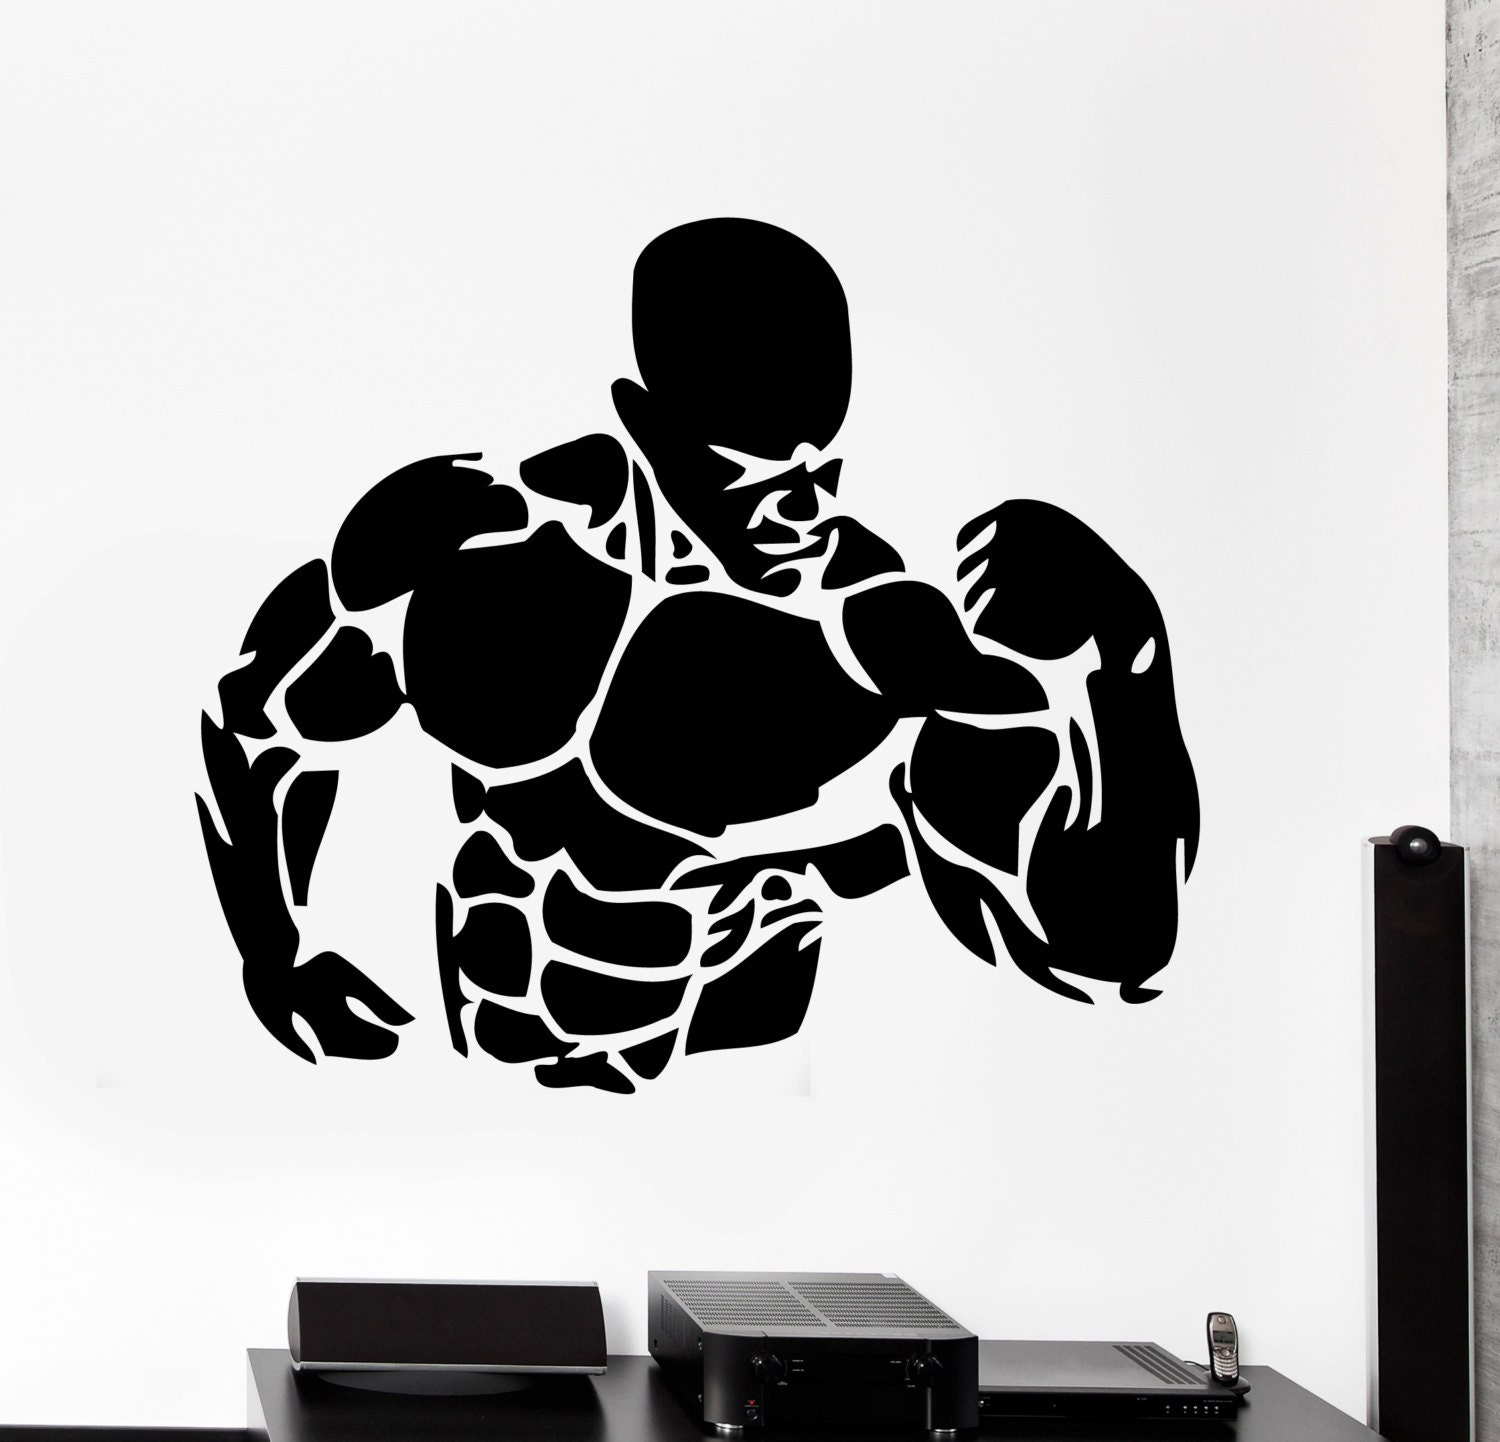 Removable Wall Art Stickers Wall Stickers Vinyl Decal Bodybuilding Fitness Bodybuilder